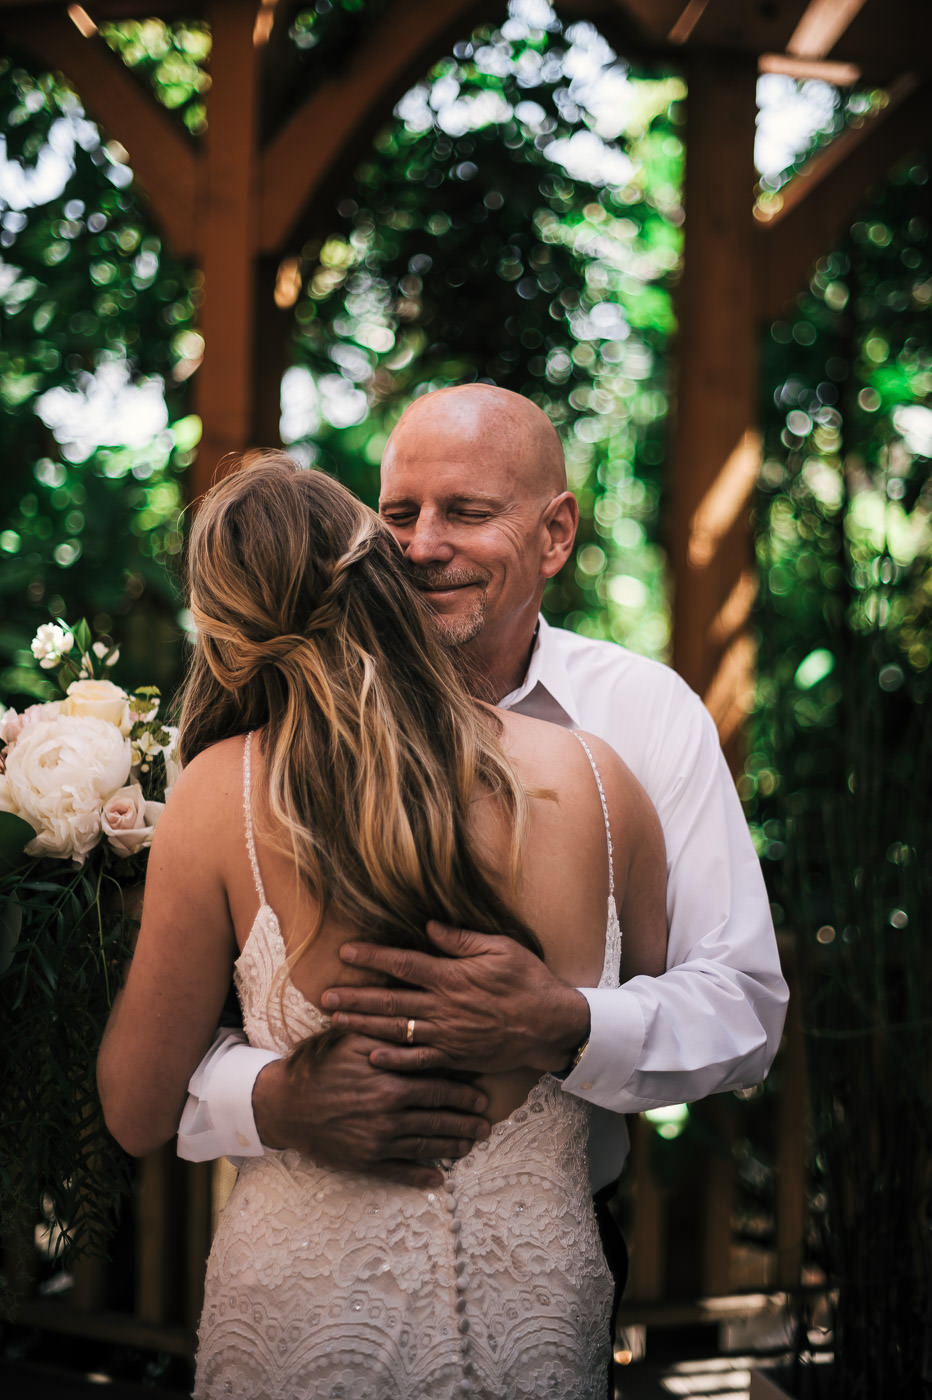 Father of the bride is overcome with joy as he hugs his daughter tightly before the Temecula wedding.